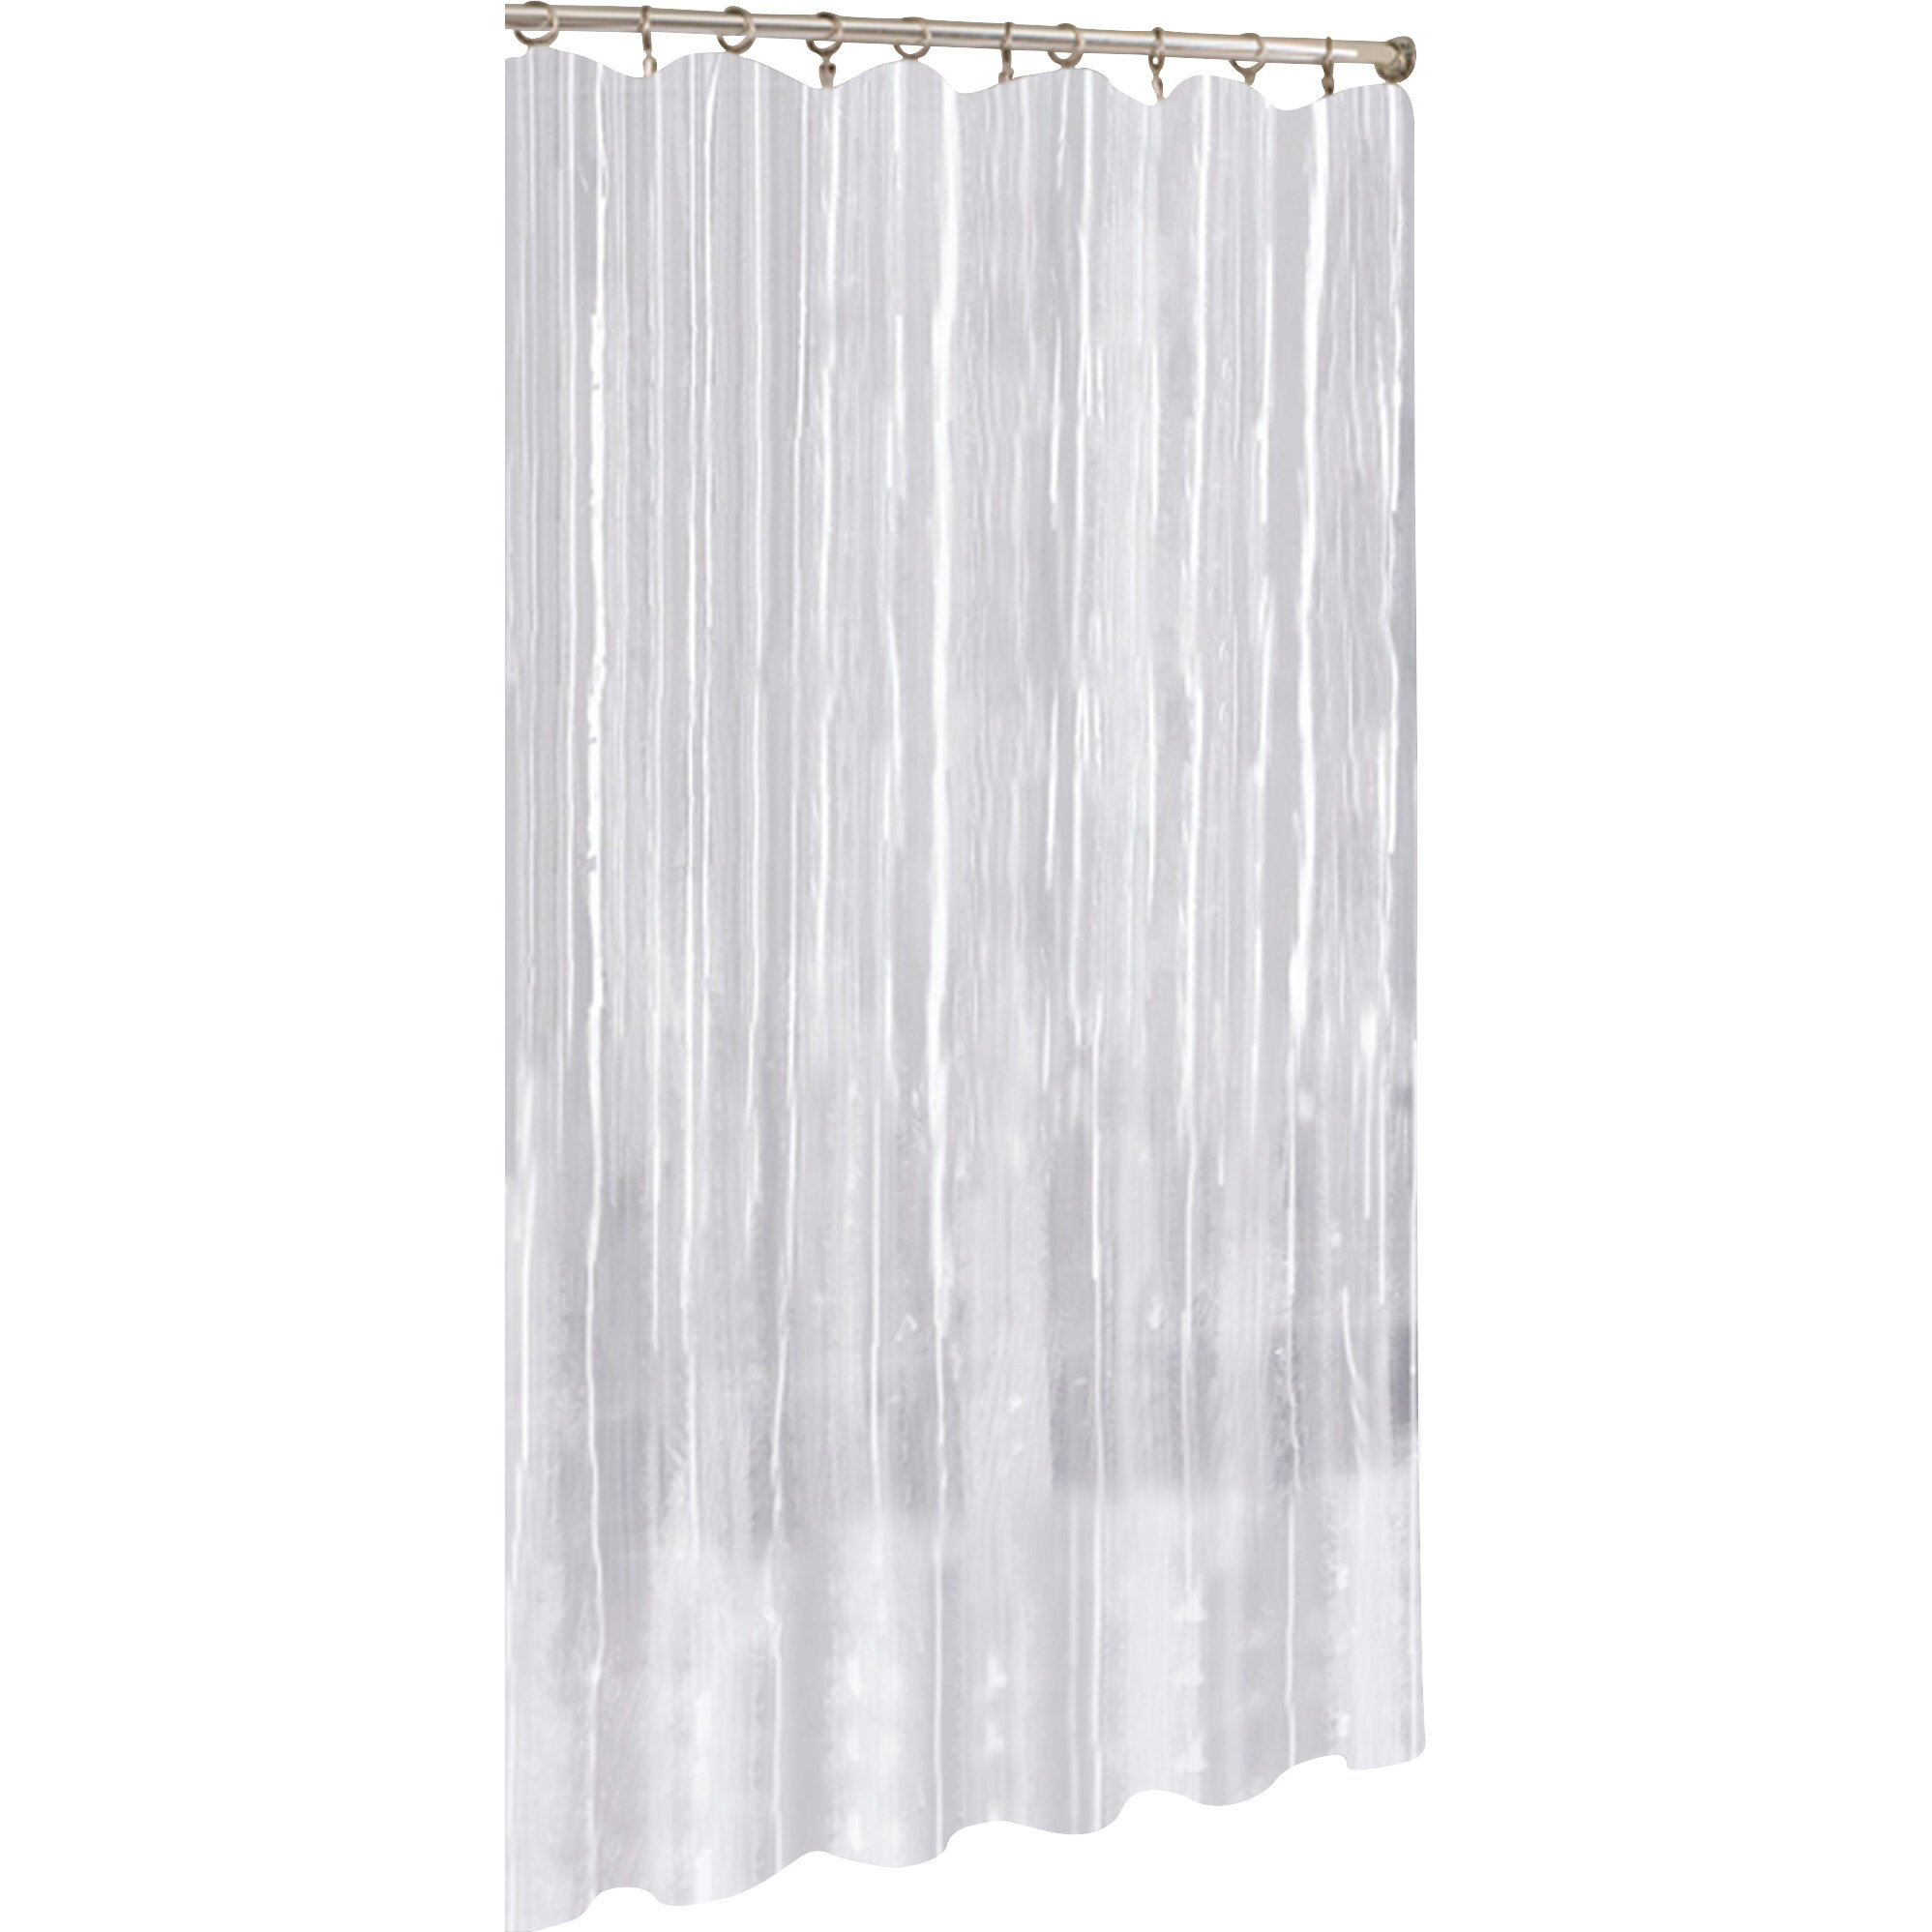 Anthropologie Ruffle Shower Curtain Vinyl Shower Curtain Liner